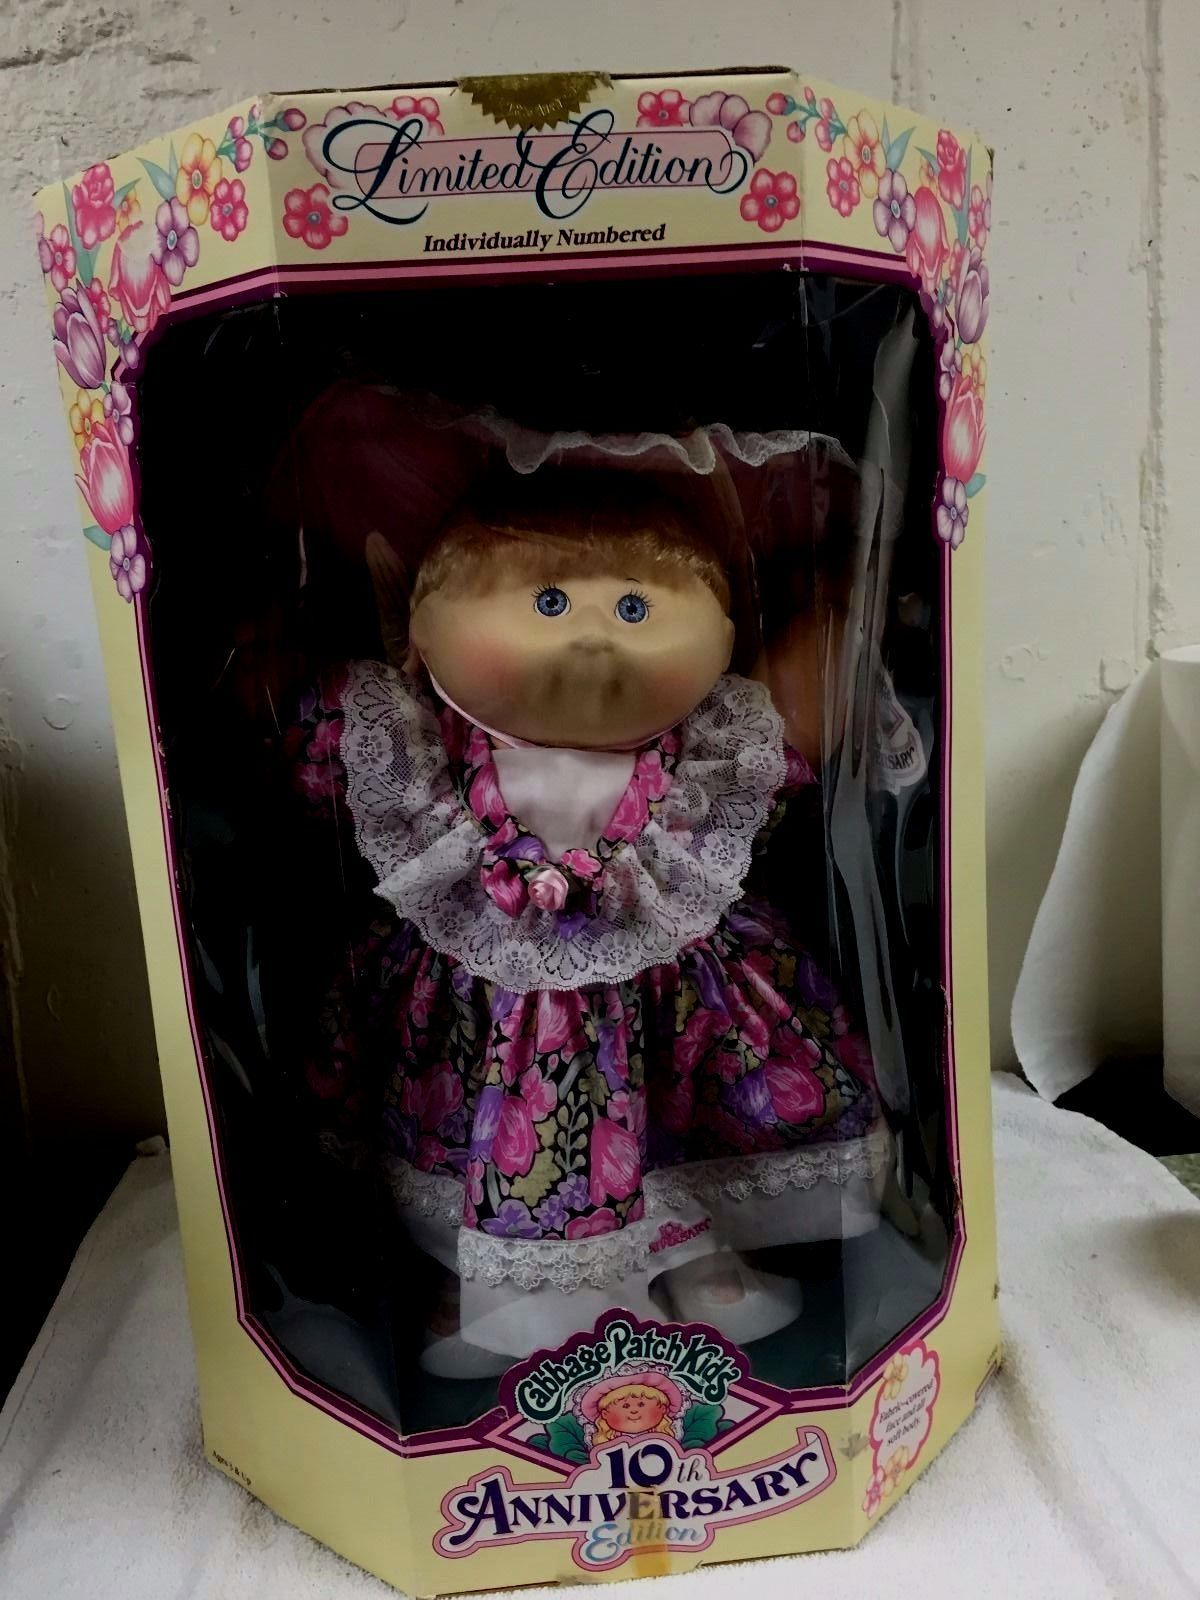 Reduced 10th Anniversary Edition 1992 Cabbage Patch Kid Sealed In Box Zora Mae Dolls Bears Dolls Cabbage Patch Kids Cabbage Patch Cabbage Patch Babies